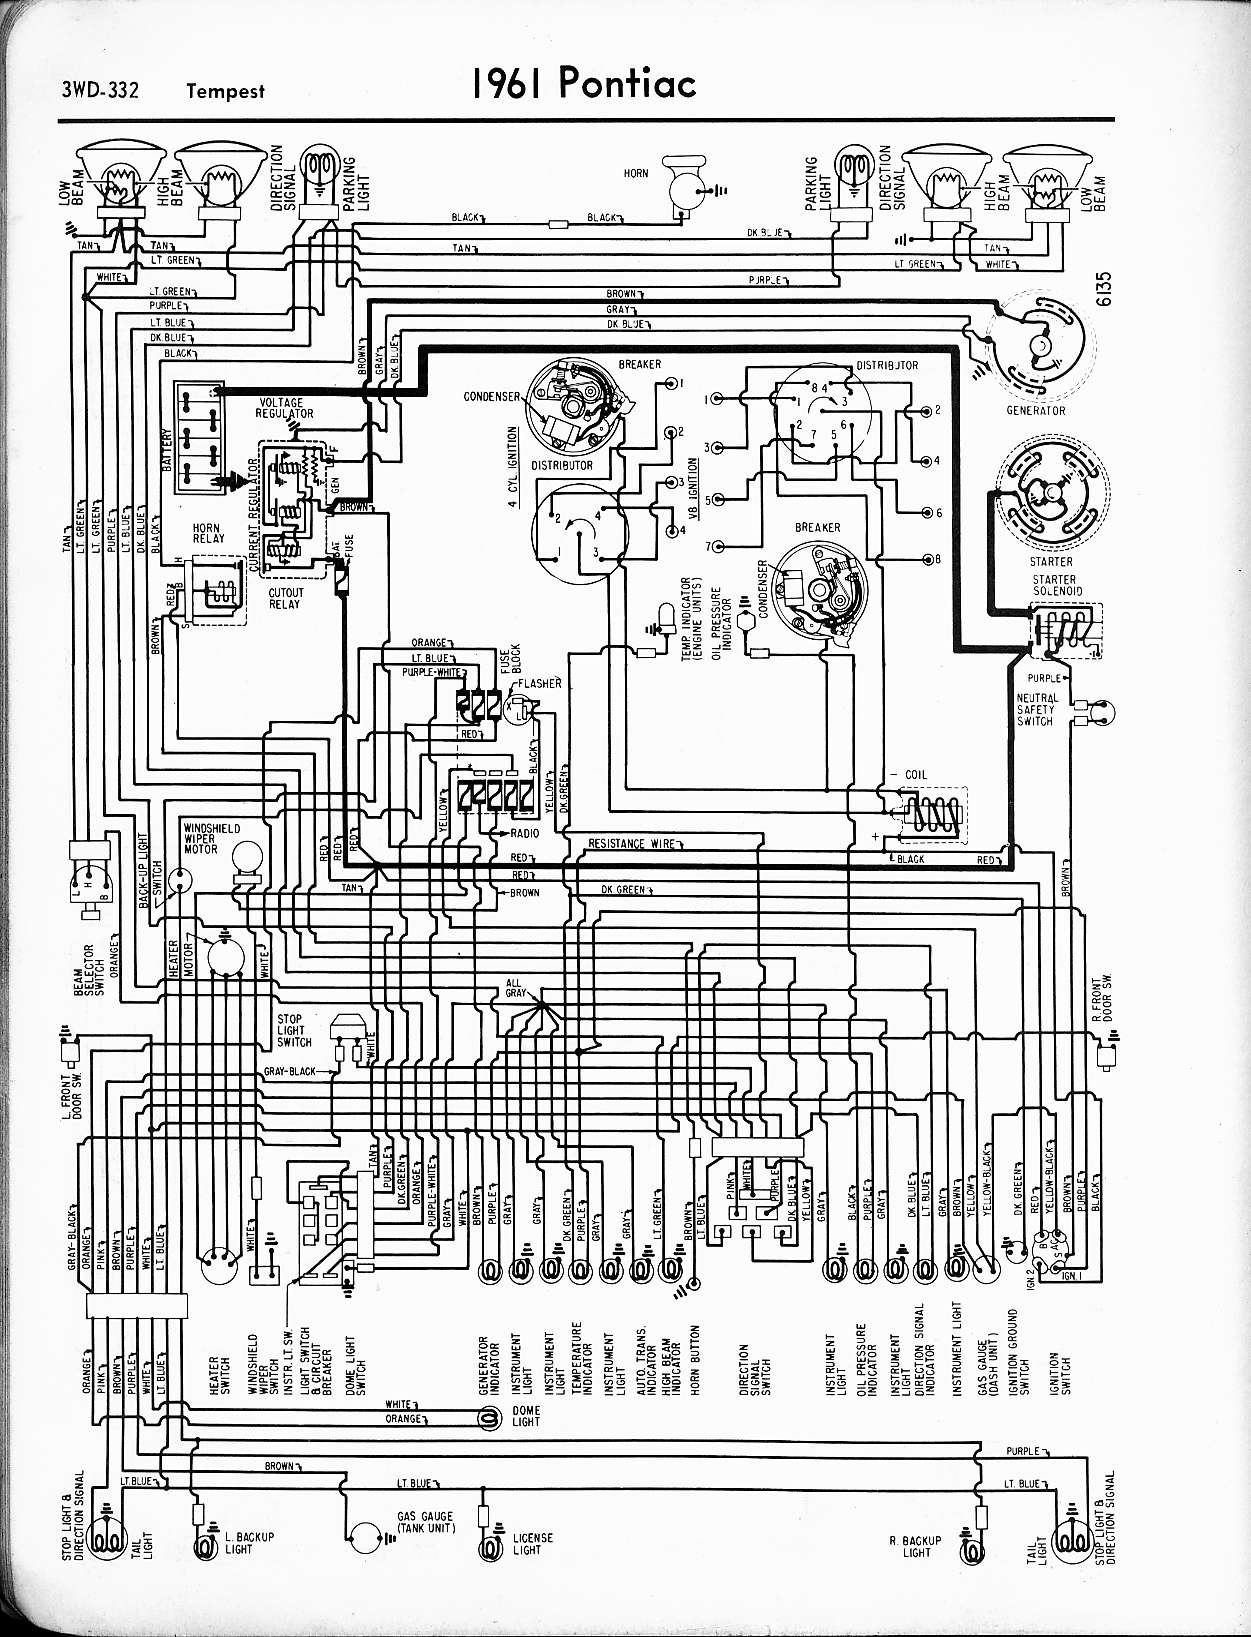 1994 firebird wire harness schematics pontiac wiring 1957-1965 1970 firebird wire diagram